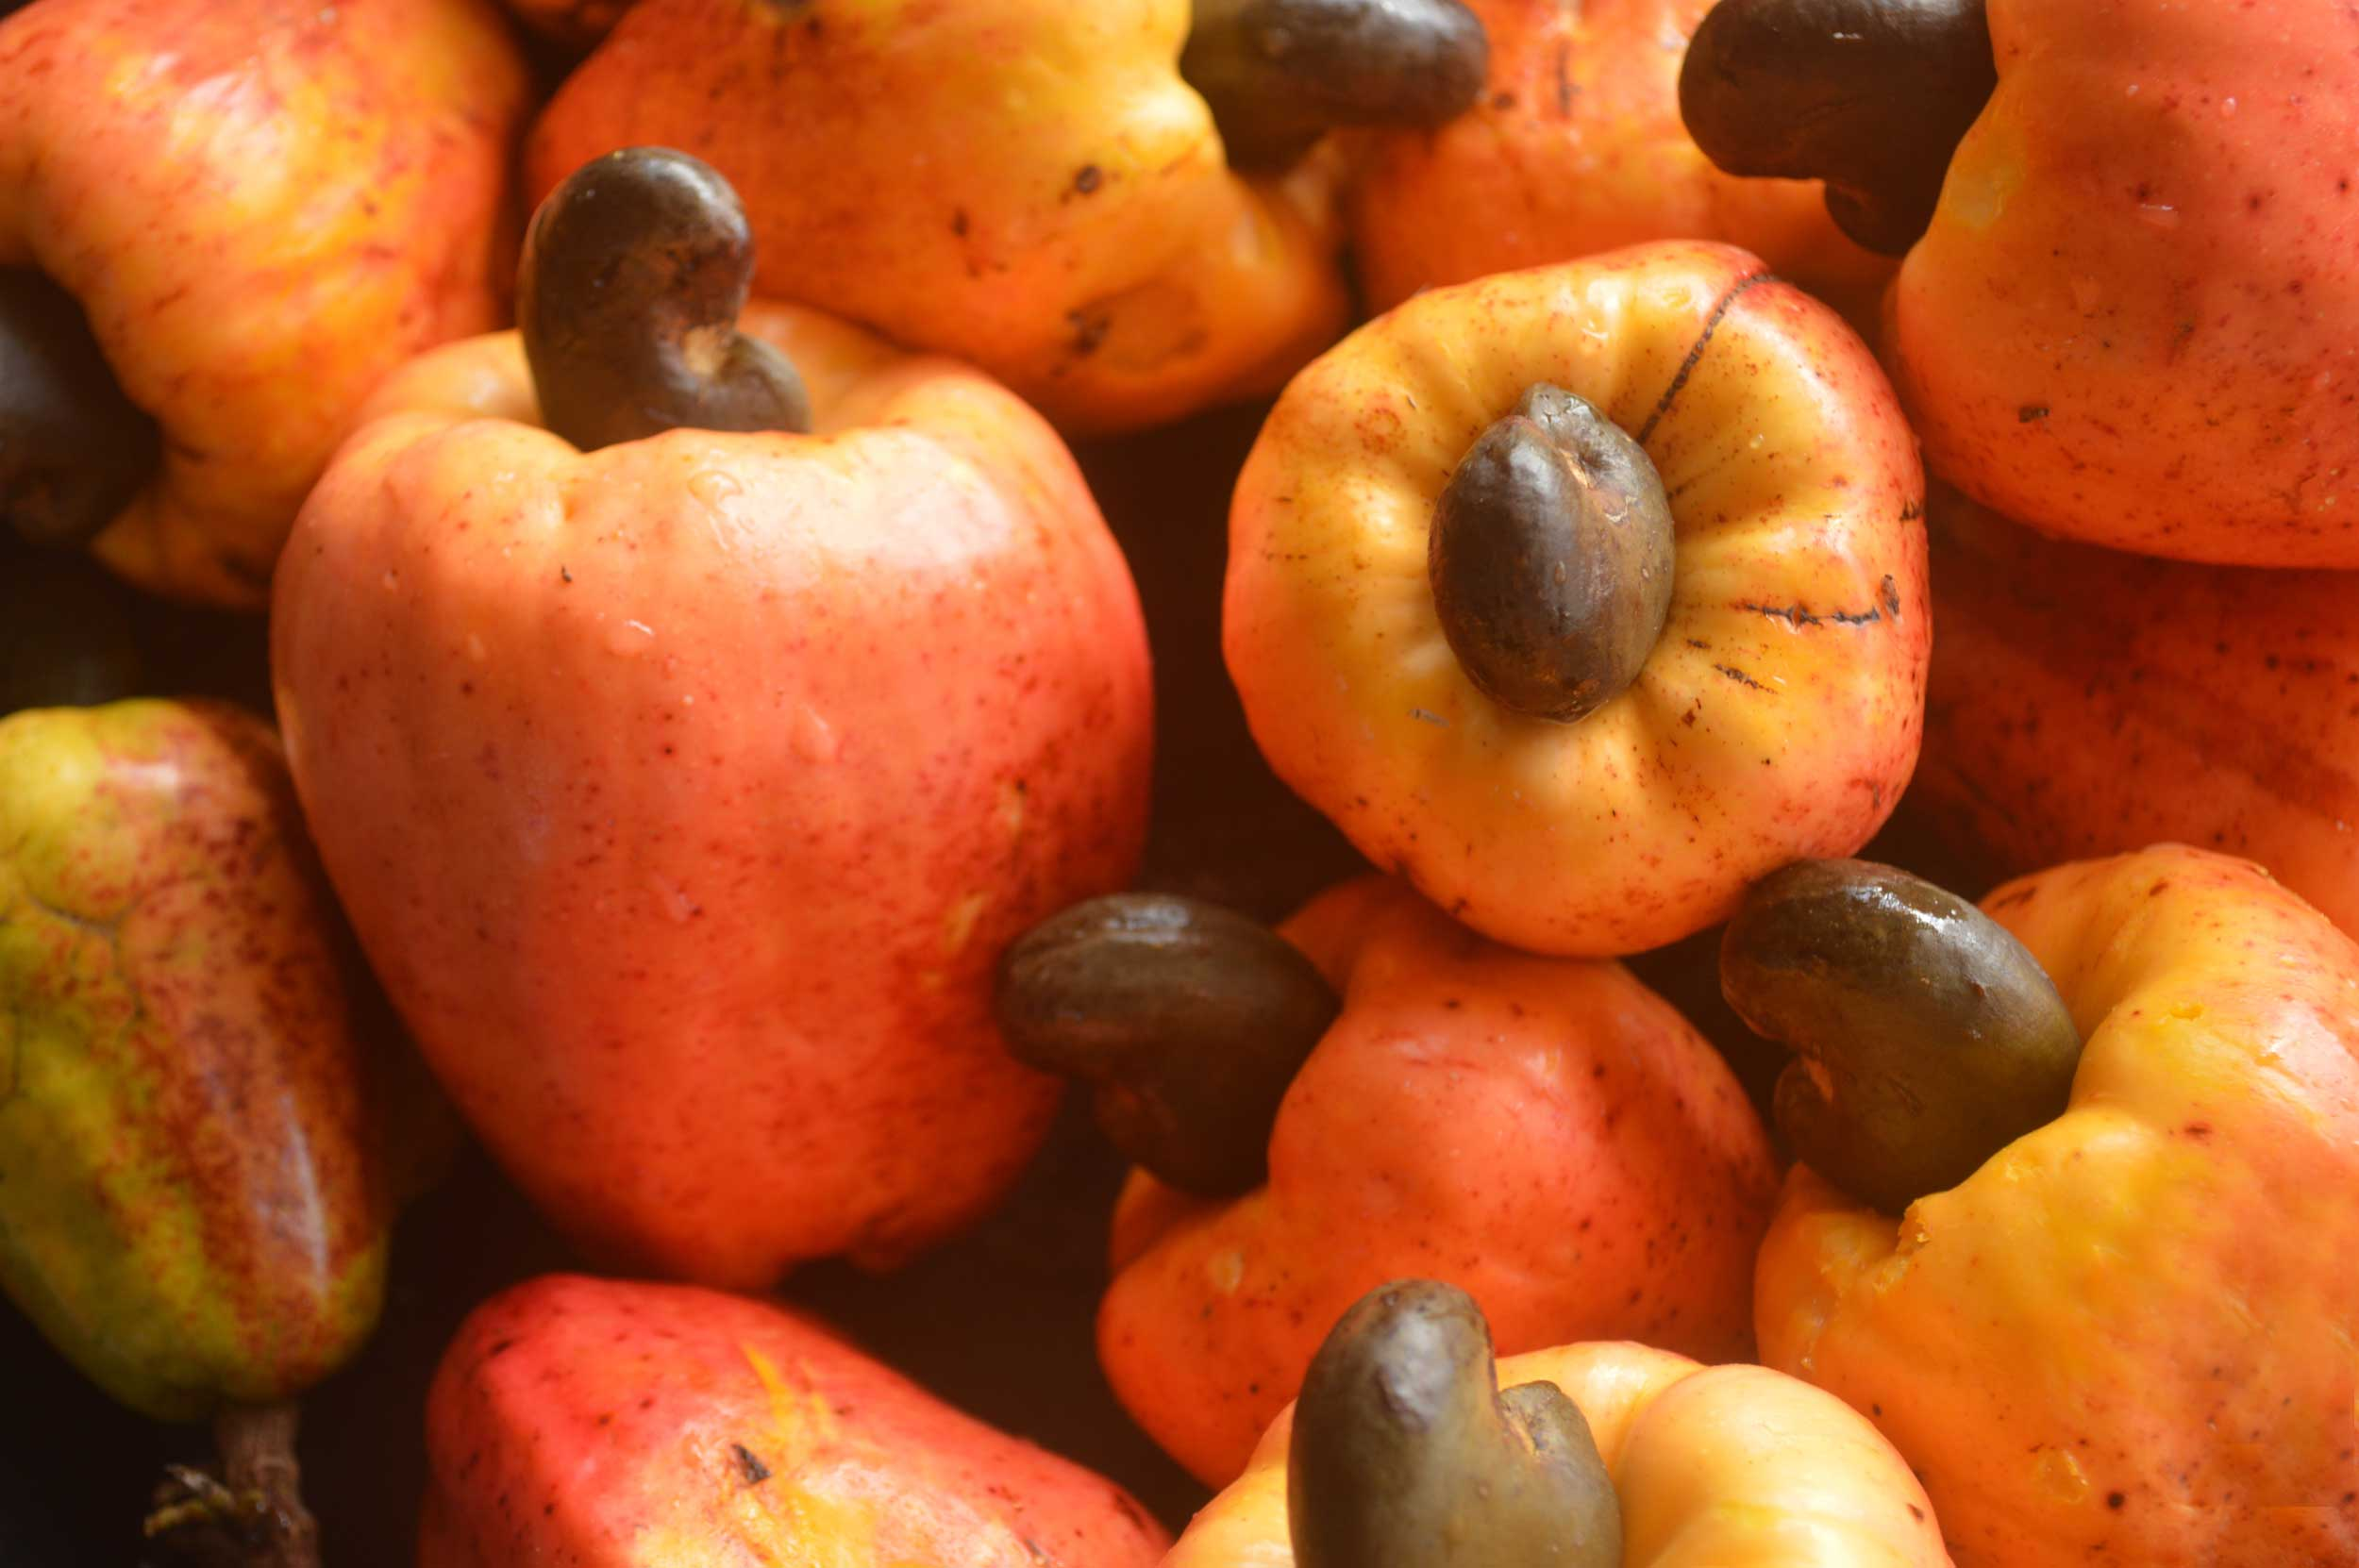 Deep orange cashew fruits with dark brown nuts growing out of them